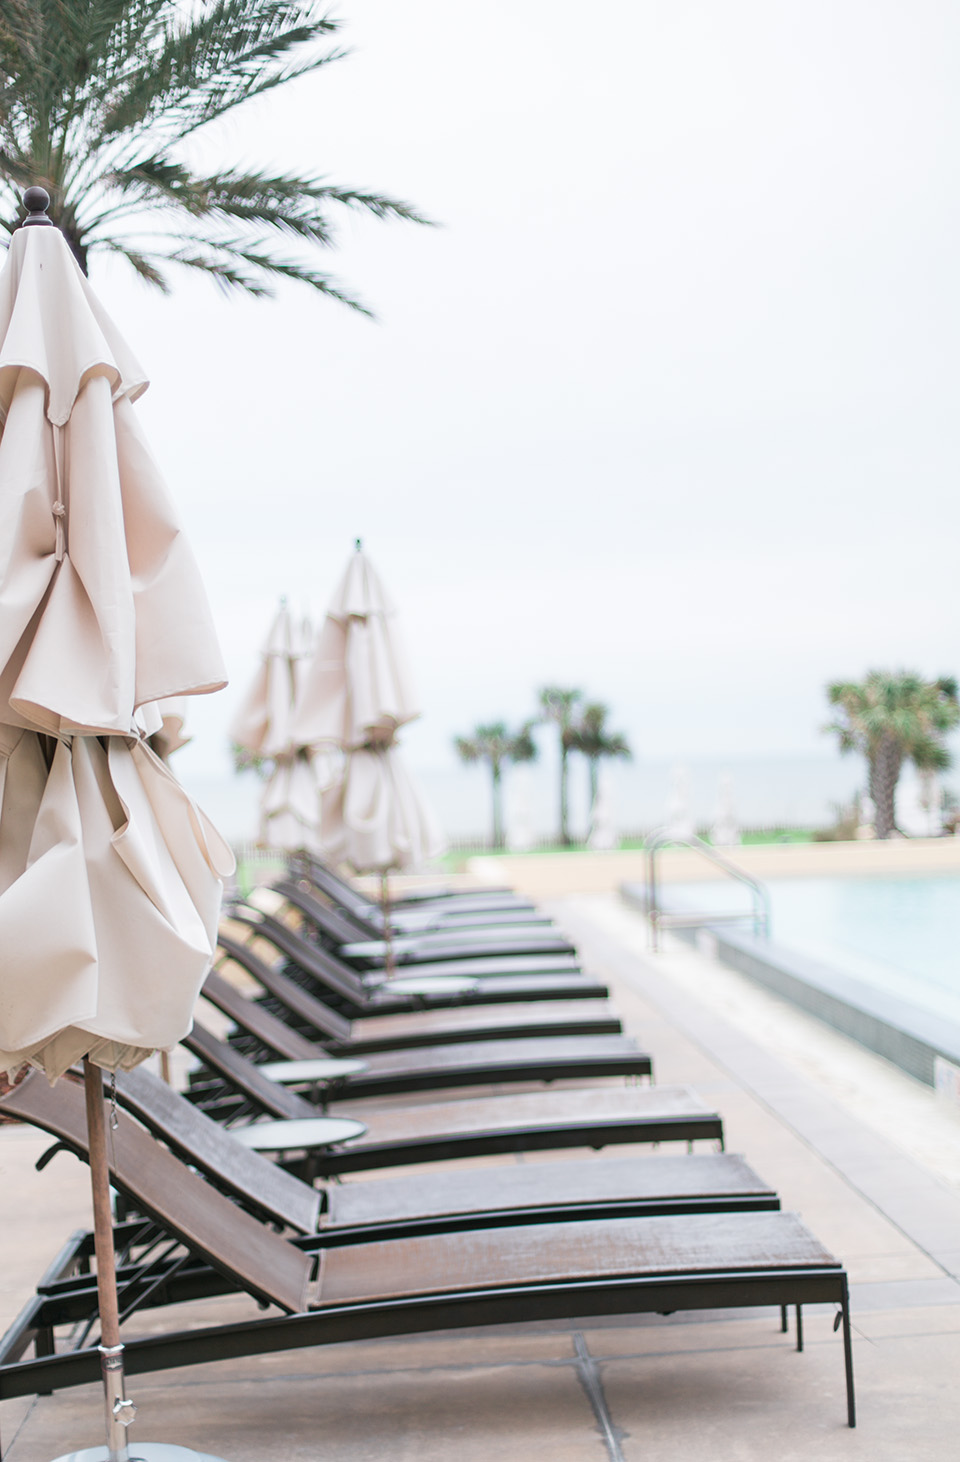 This is a picture of lounge chairs lined up in a row on a pool deck at the Omni Amelia Island Plantation Resort.